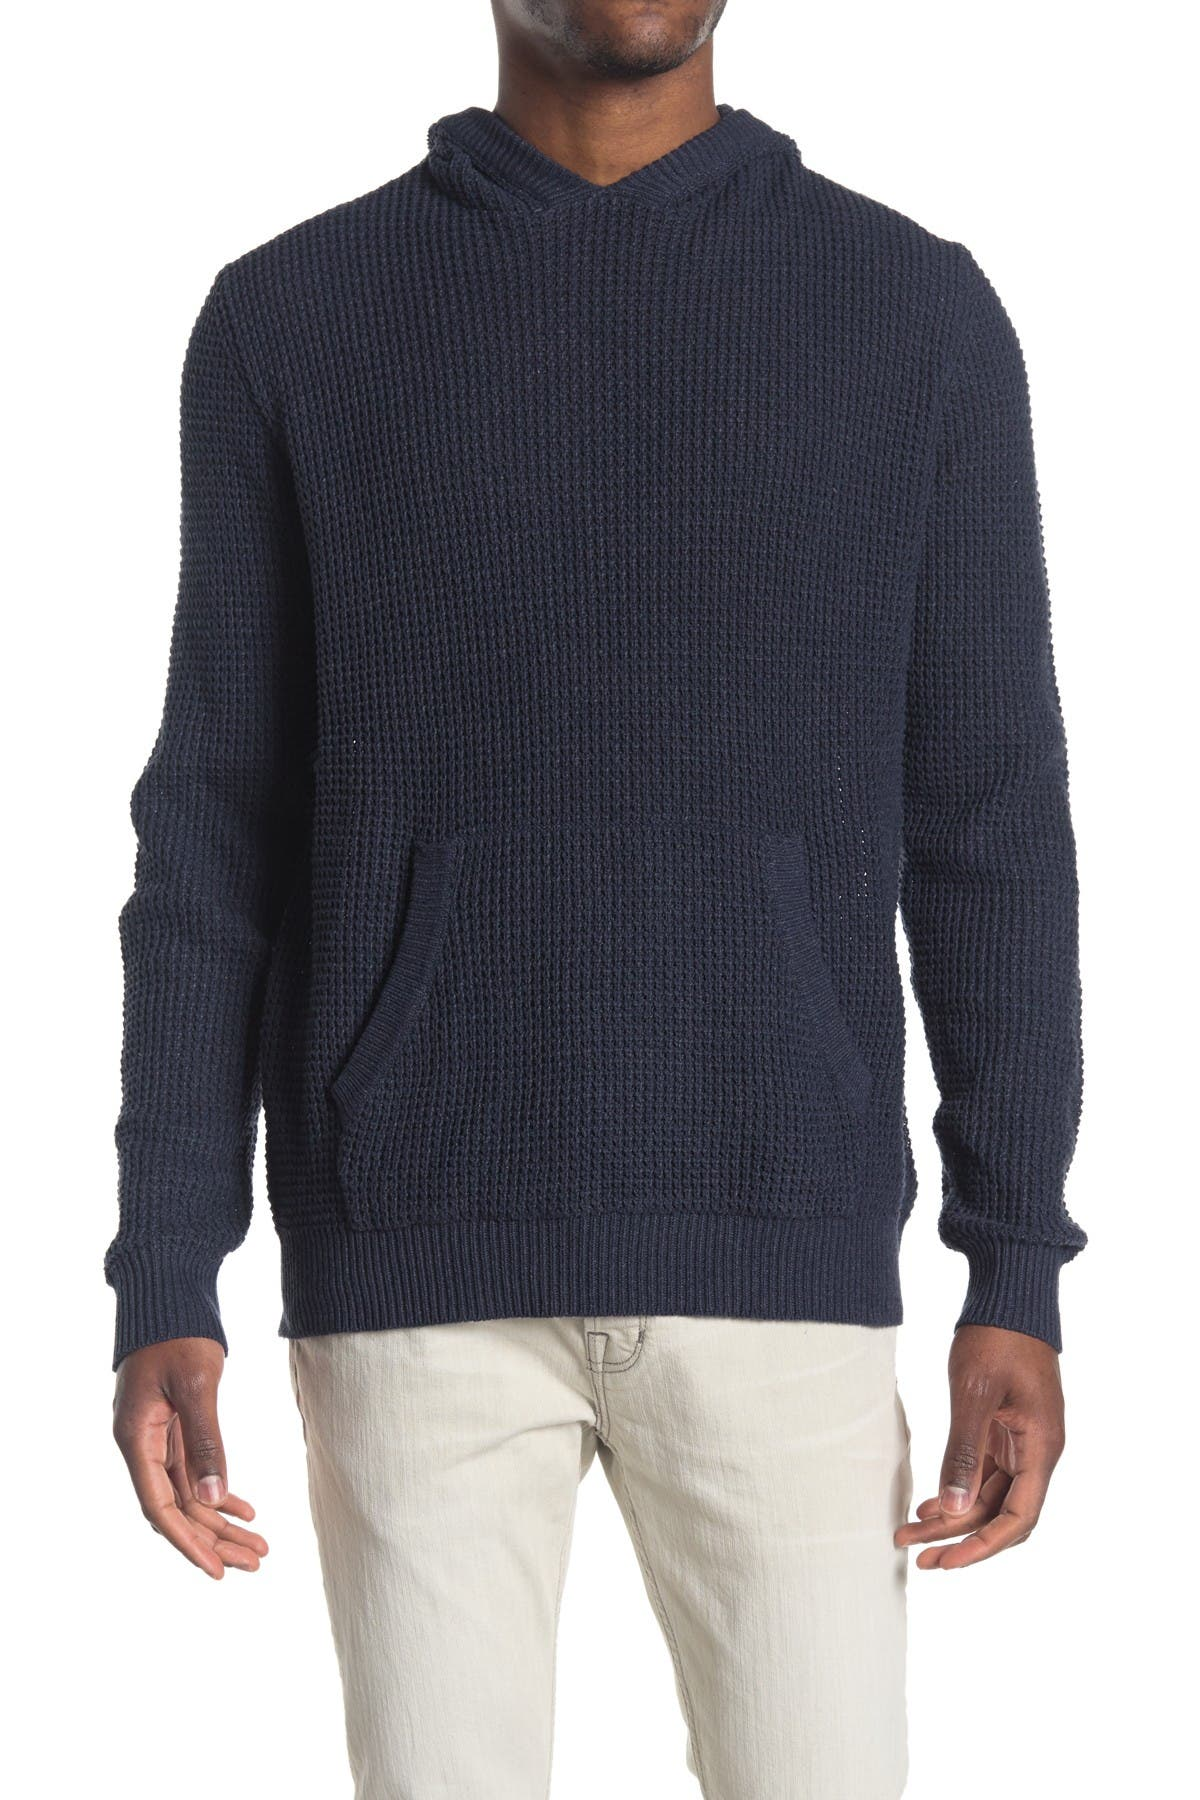 Image of HEDGE Knit Pullover Hoodie